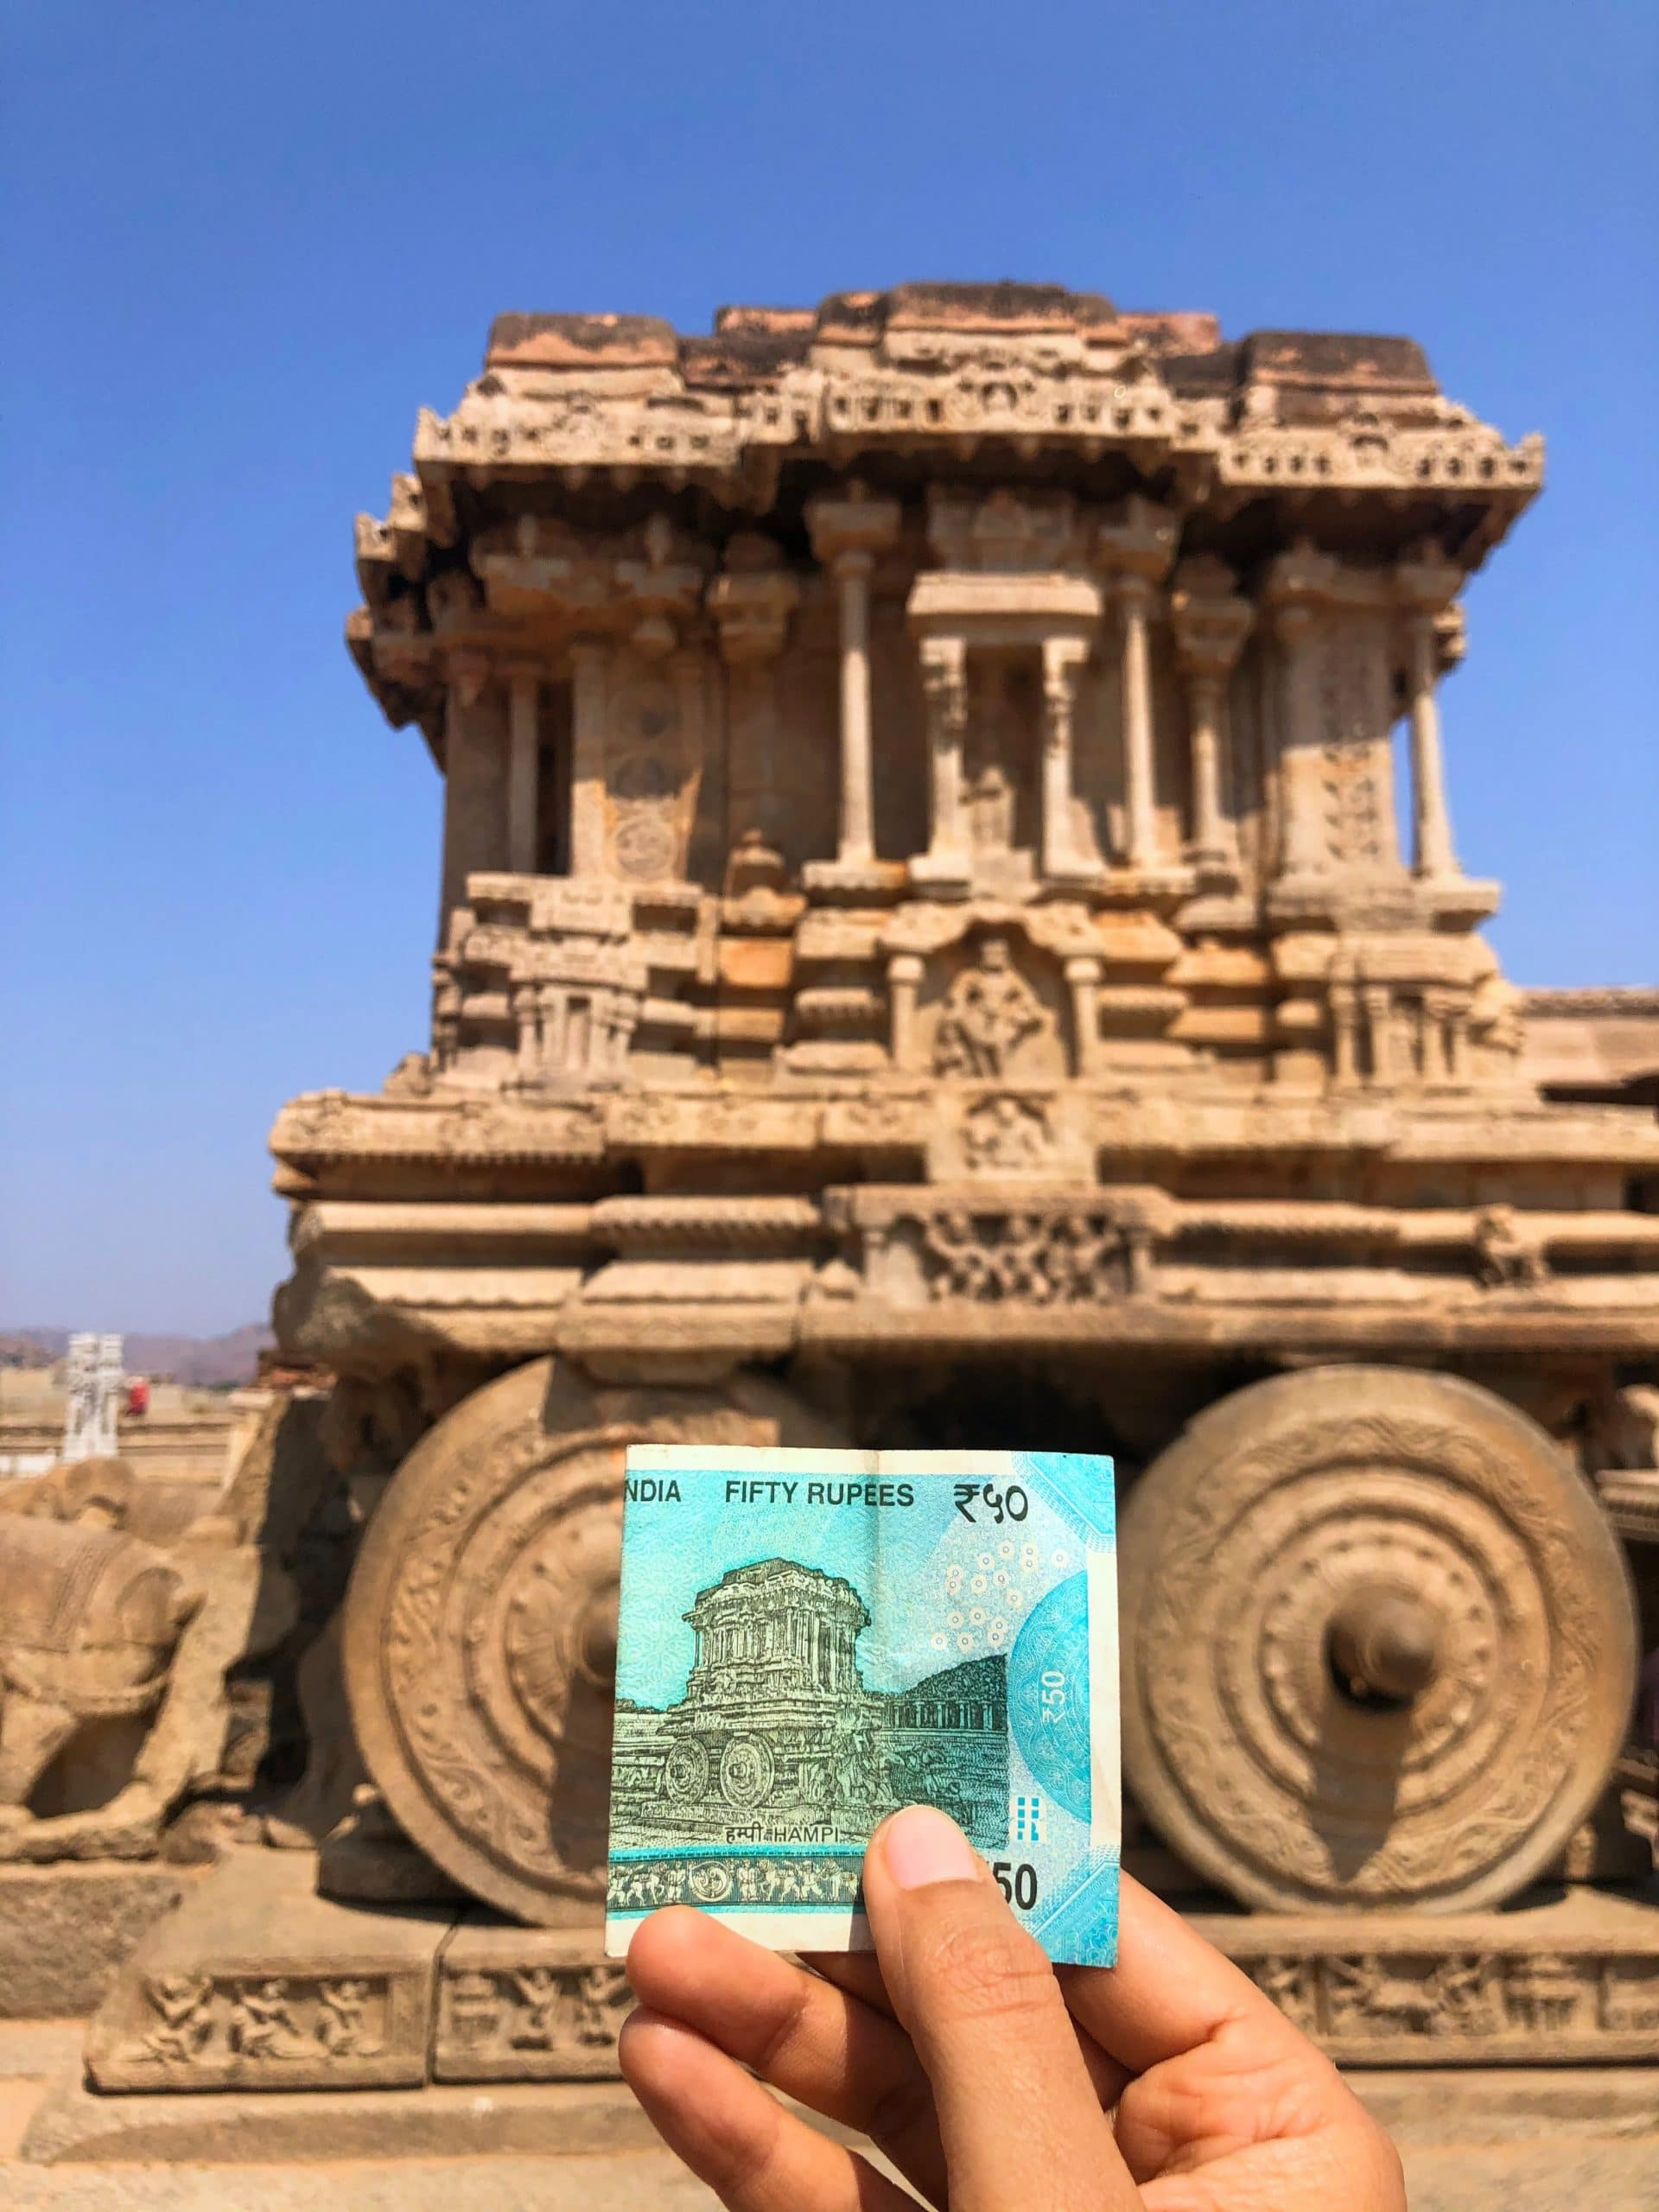 Stone Chariot in India